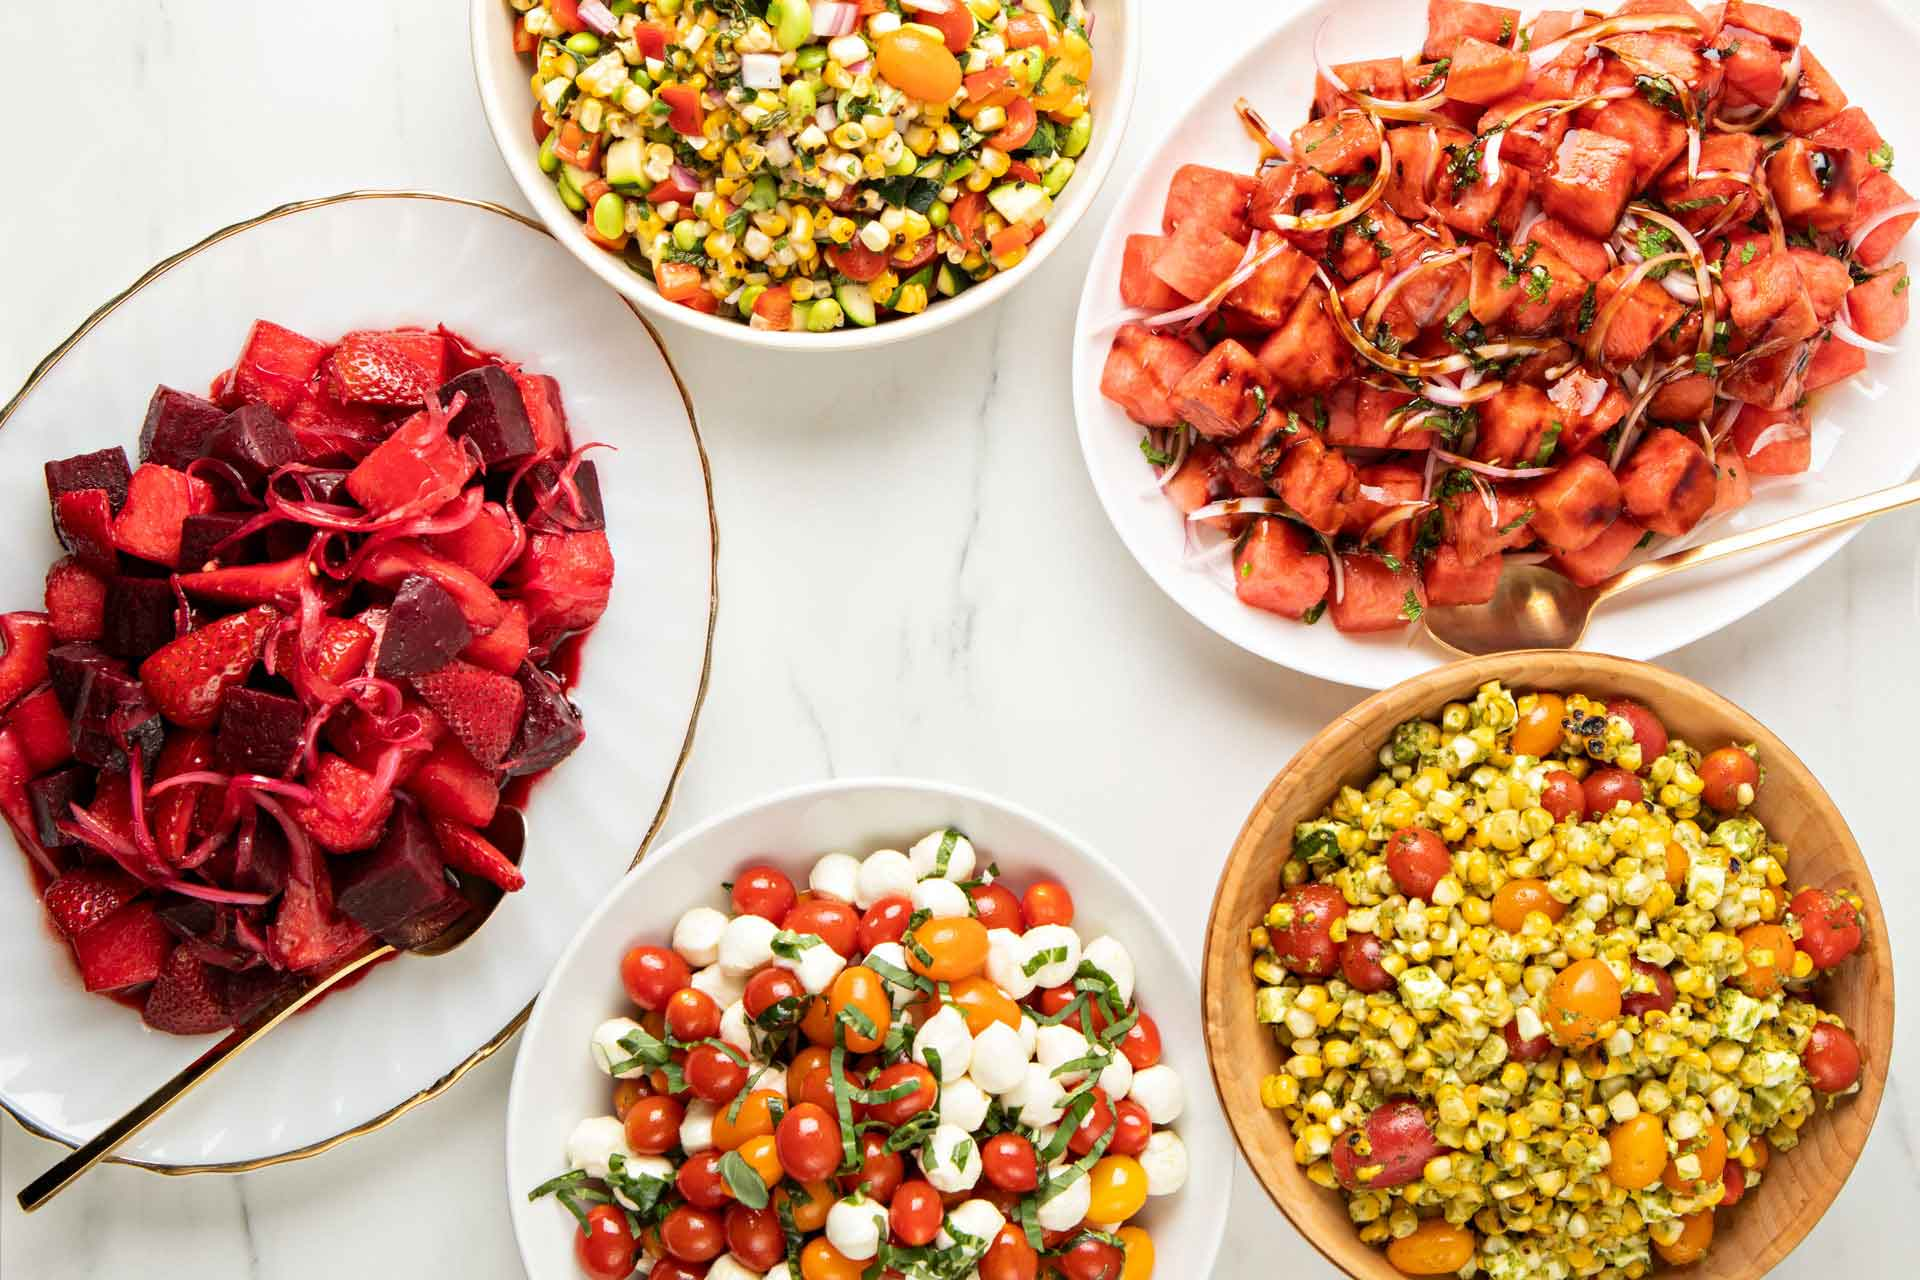 Strawberry beet, corn, caprese, and watermelon mint salads